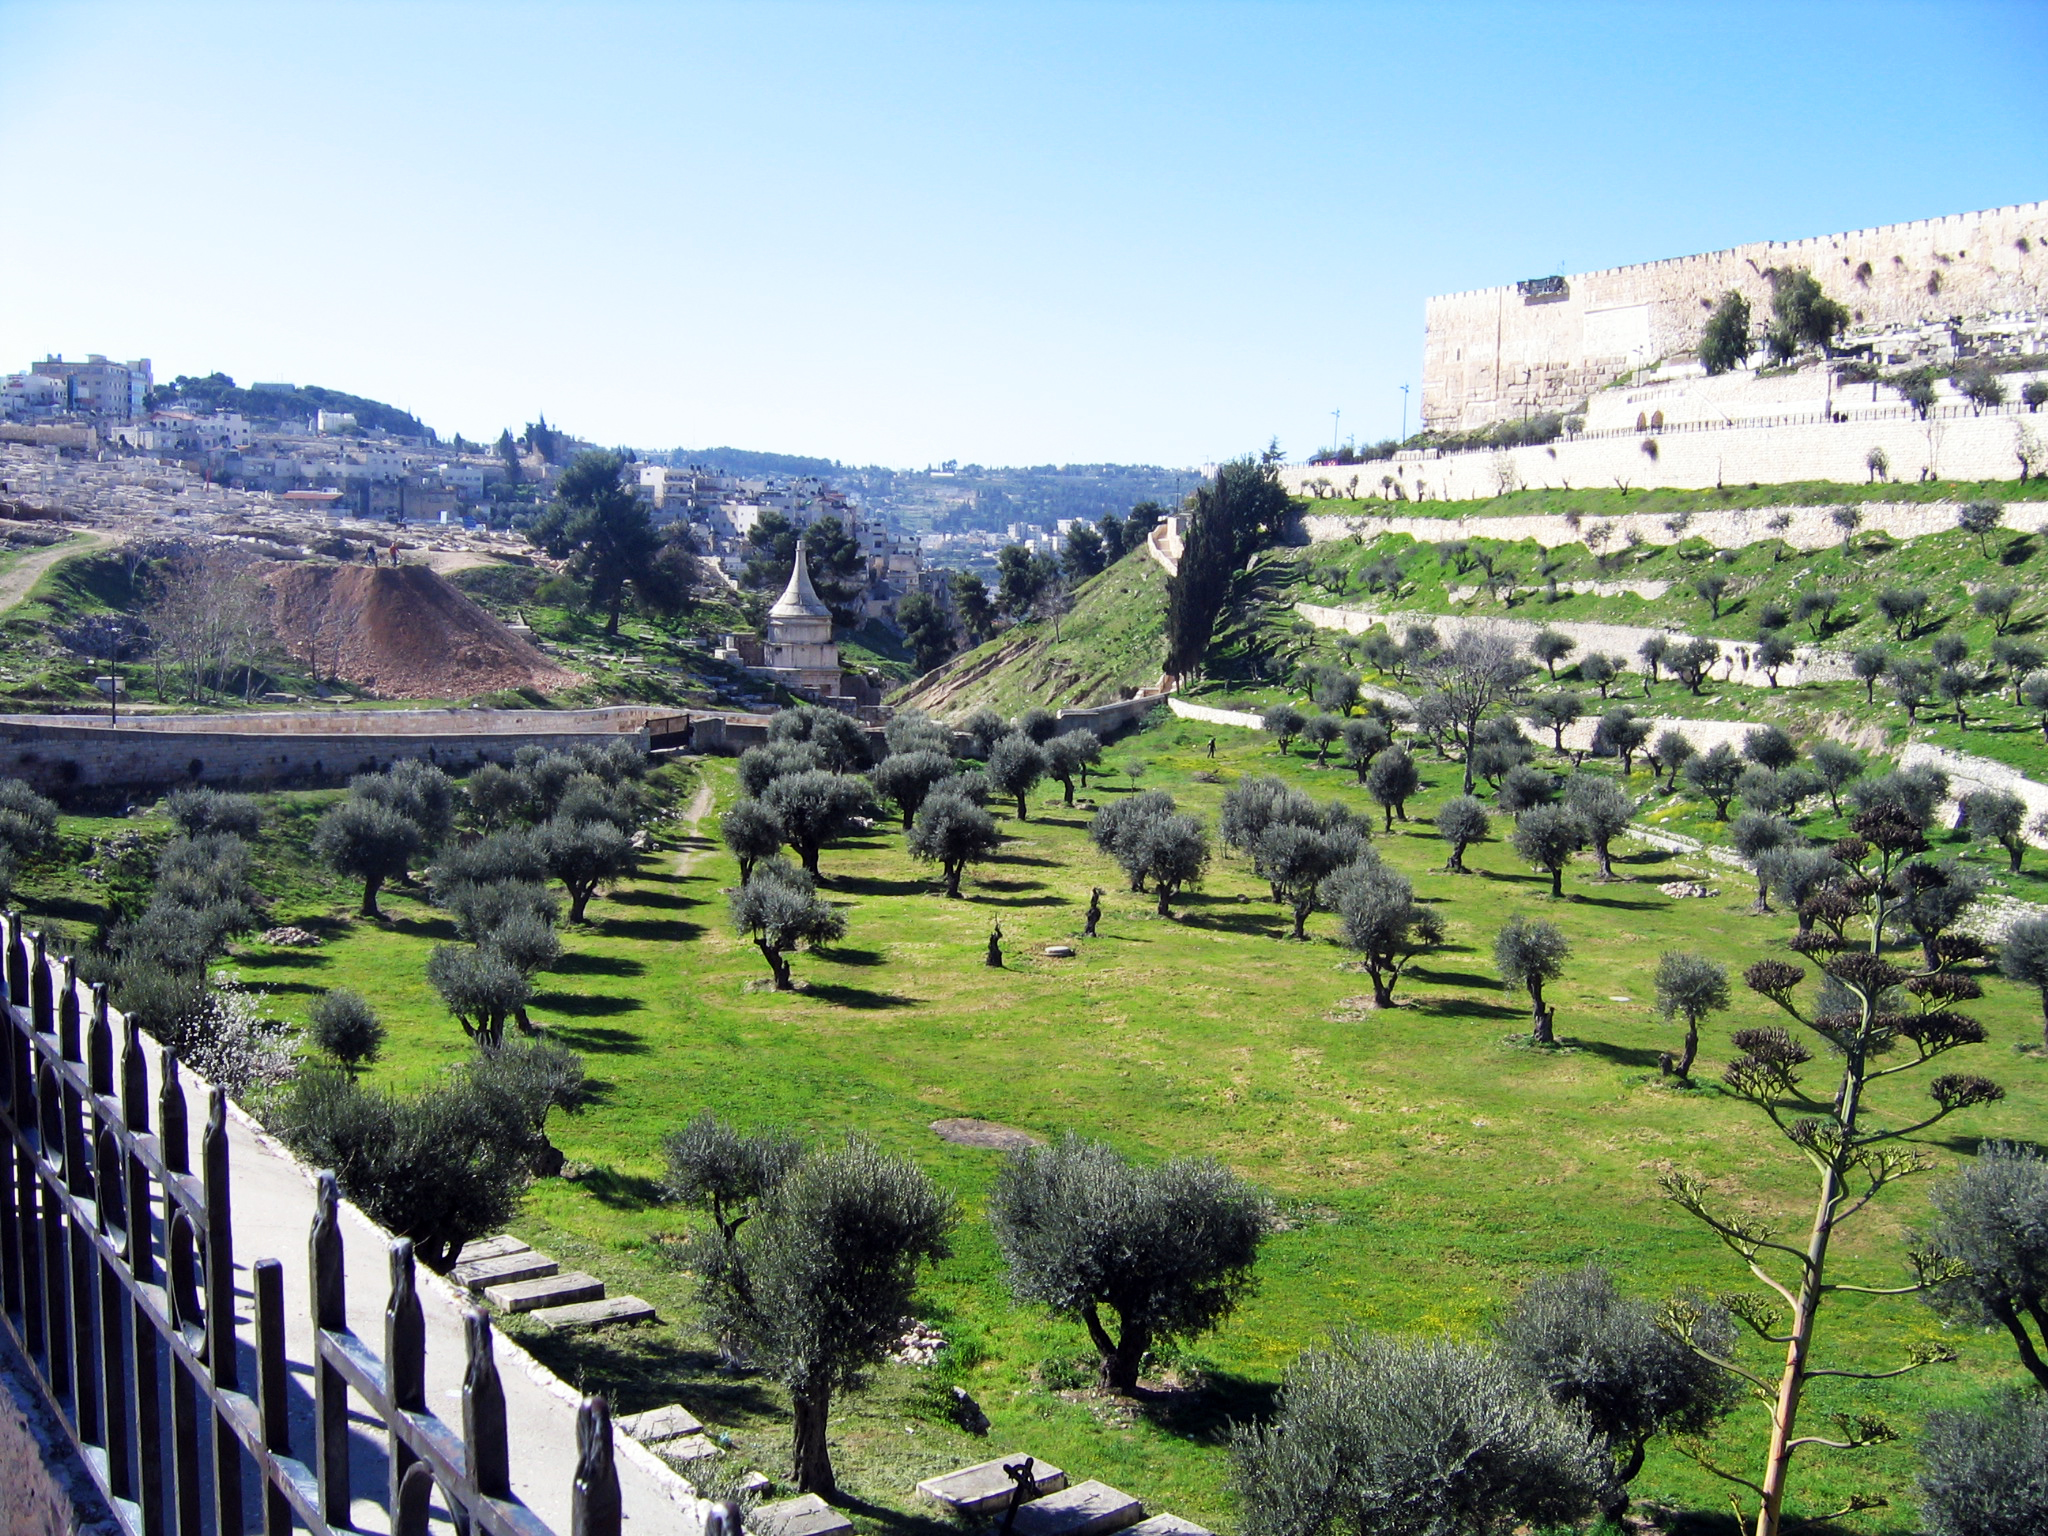 Garden Of Gethsemane Looking For The Blessed Hope